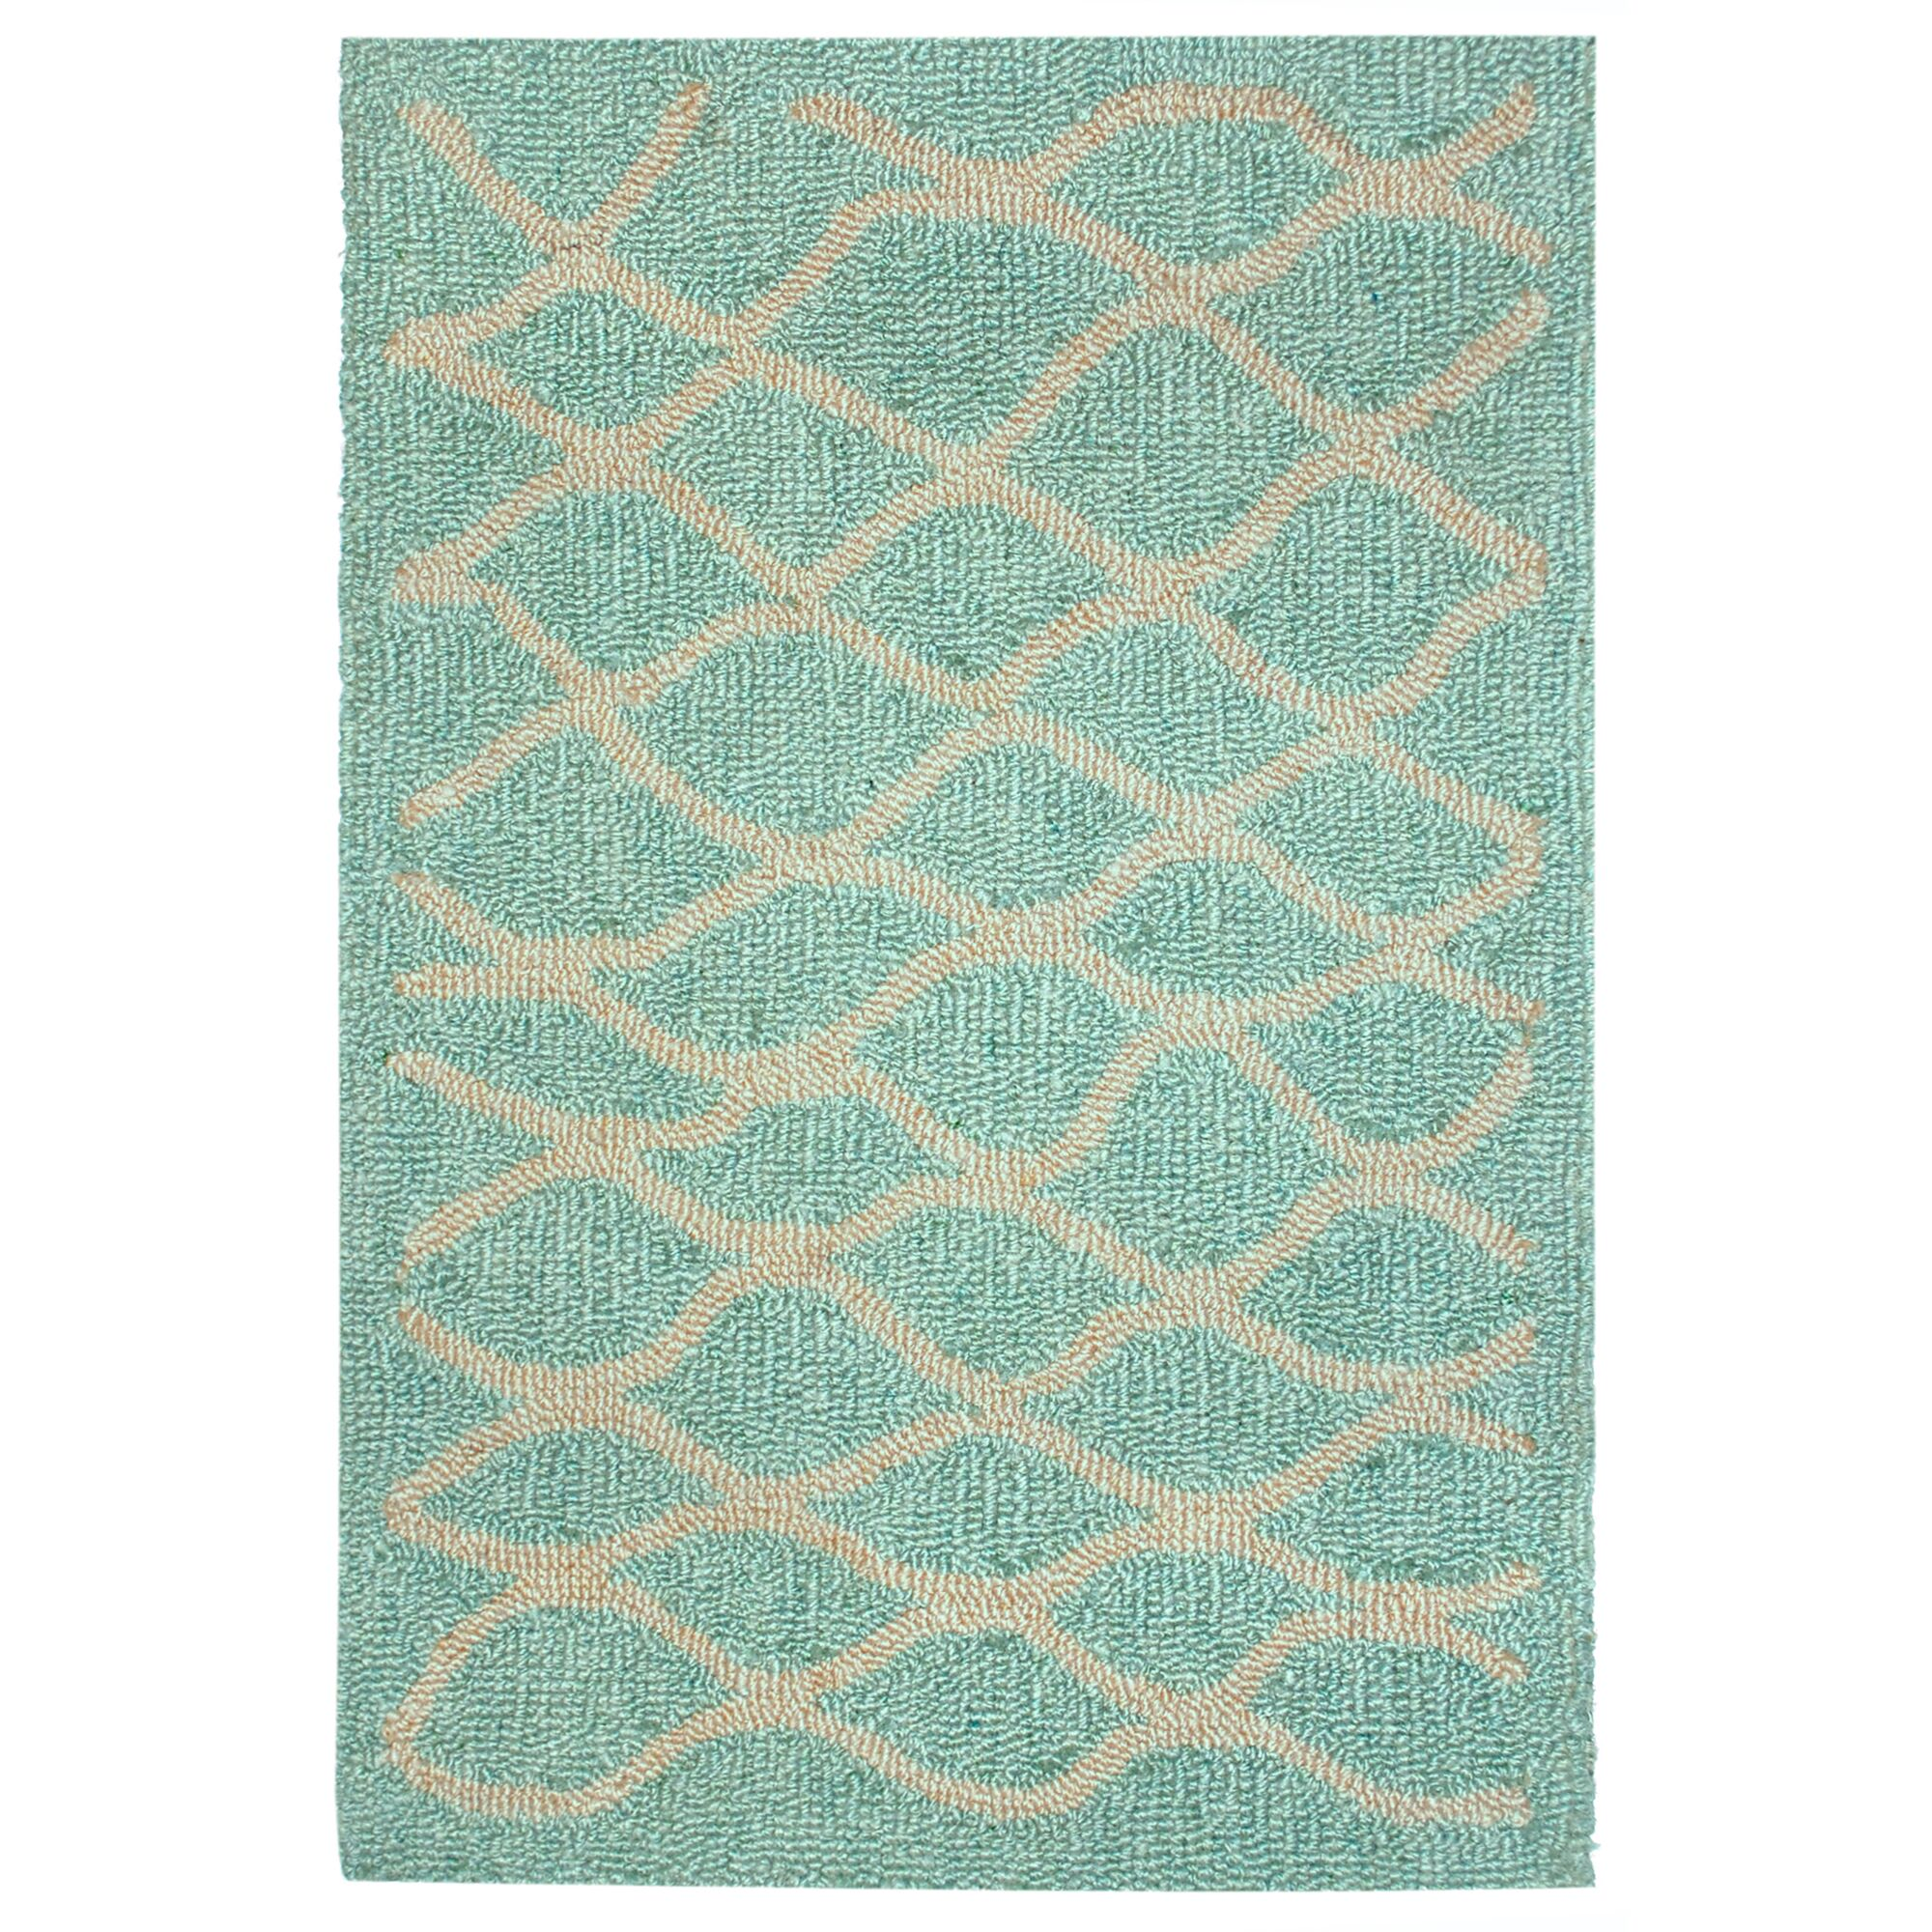 Bogard Hand-Tufted Aqua Indoor/Outdoor Area Rug Rug Size: 5' x 7'6